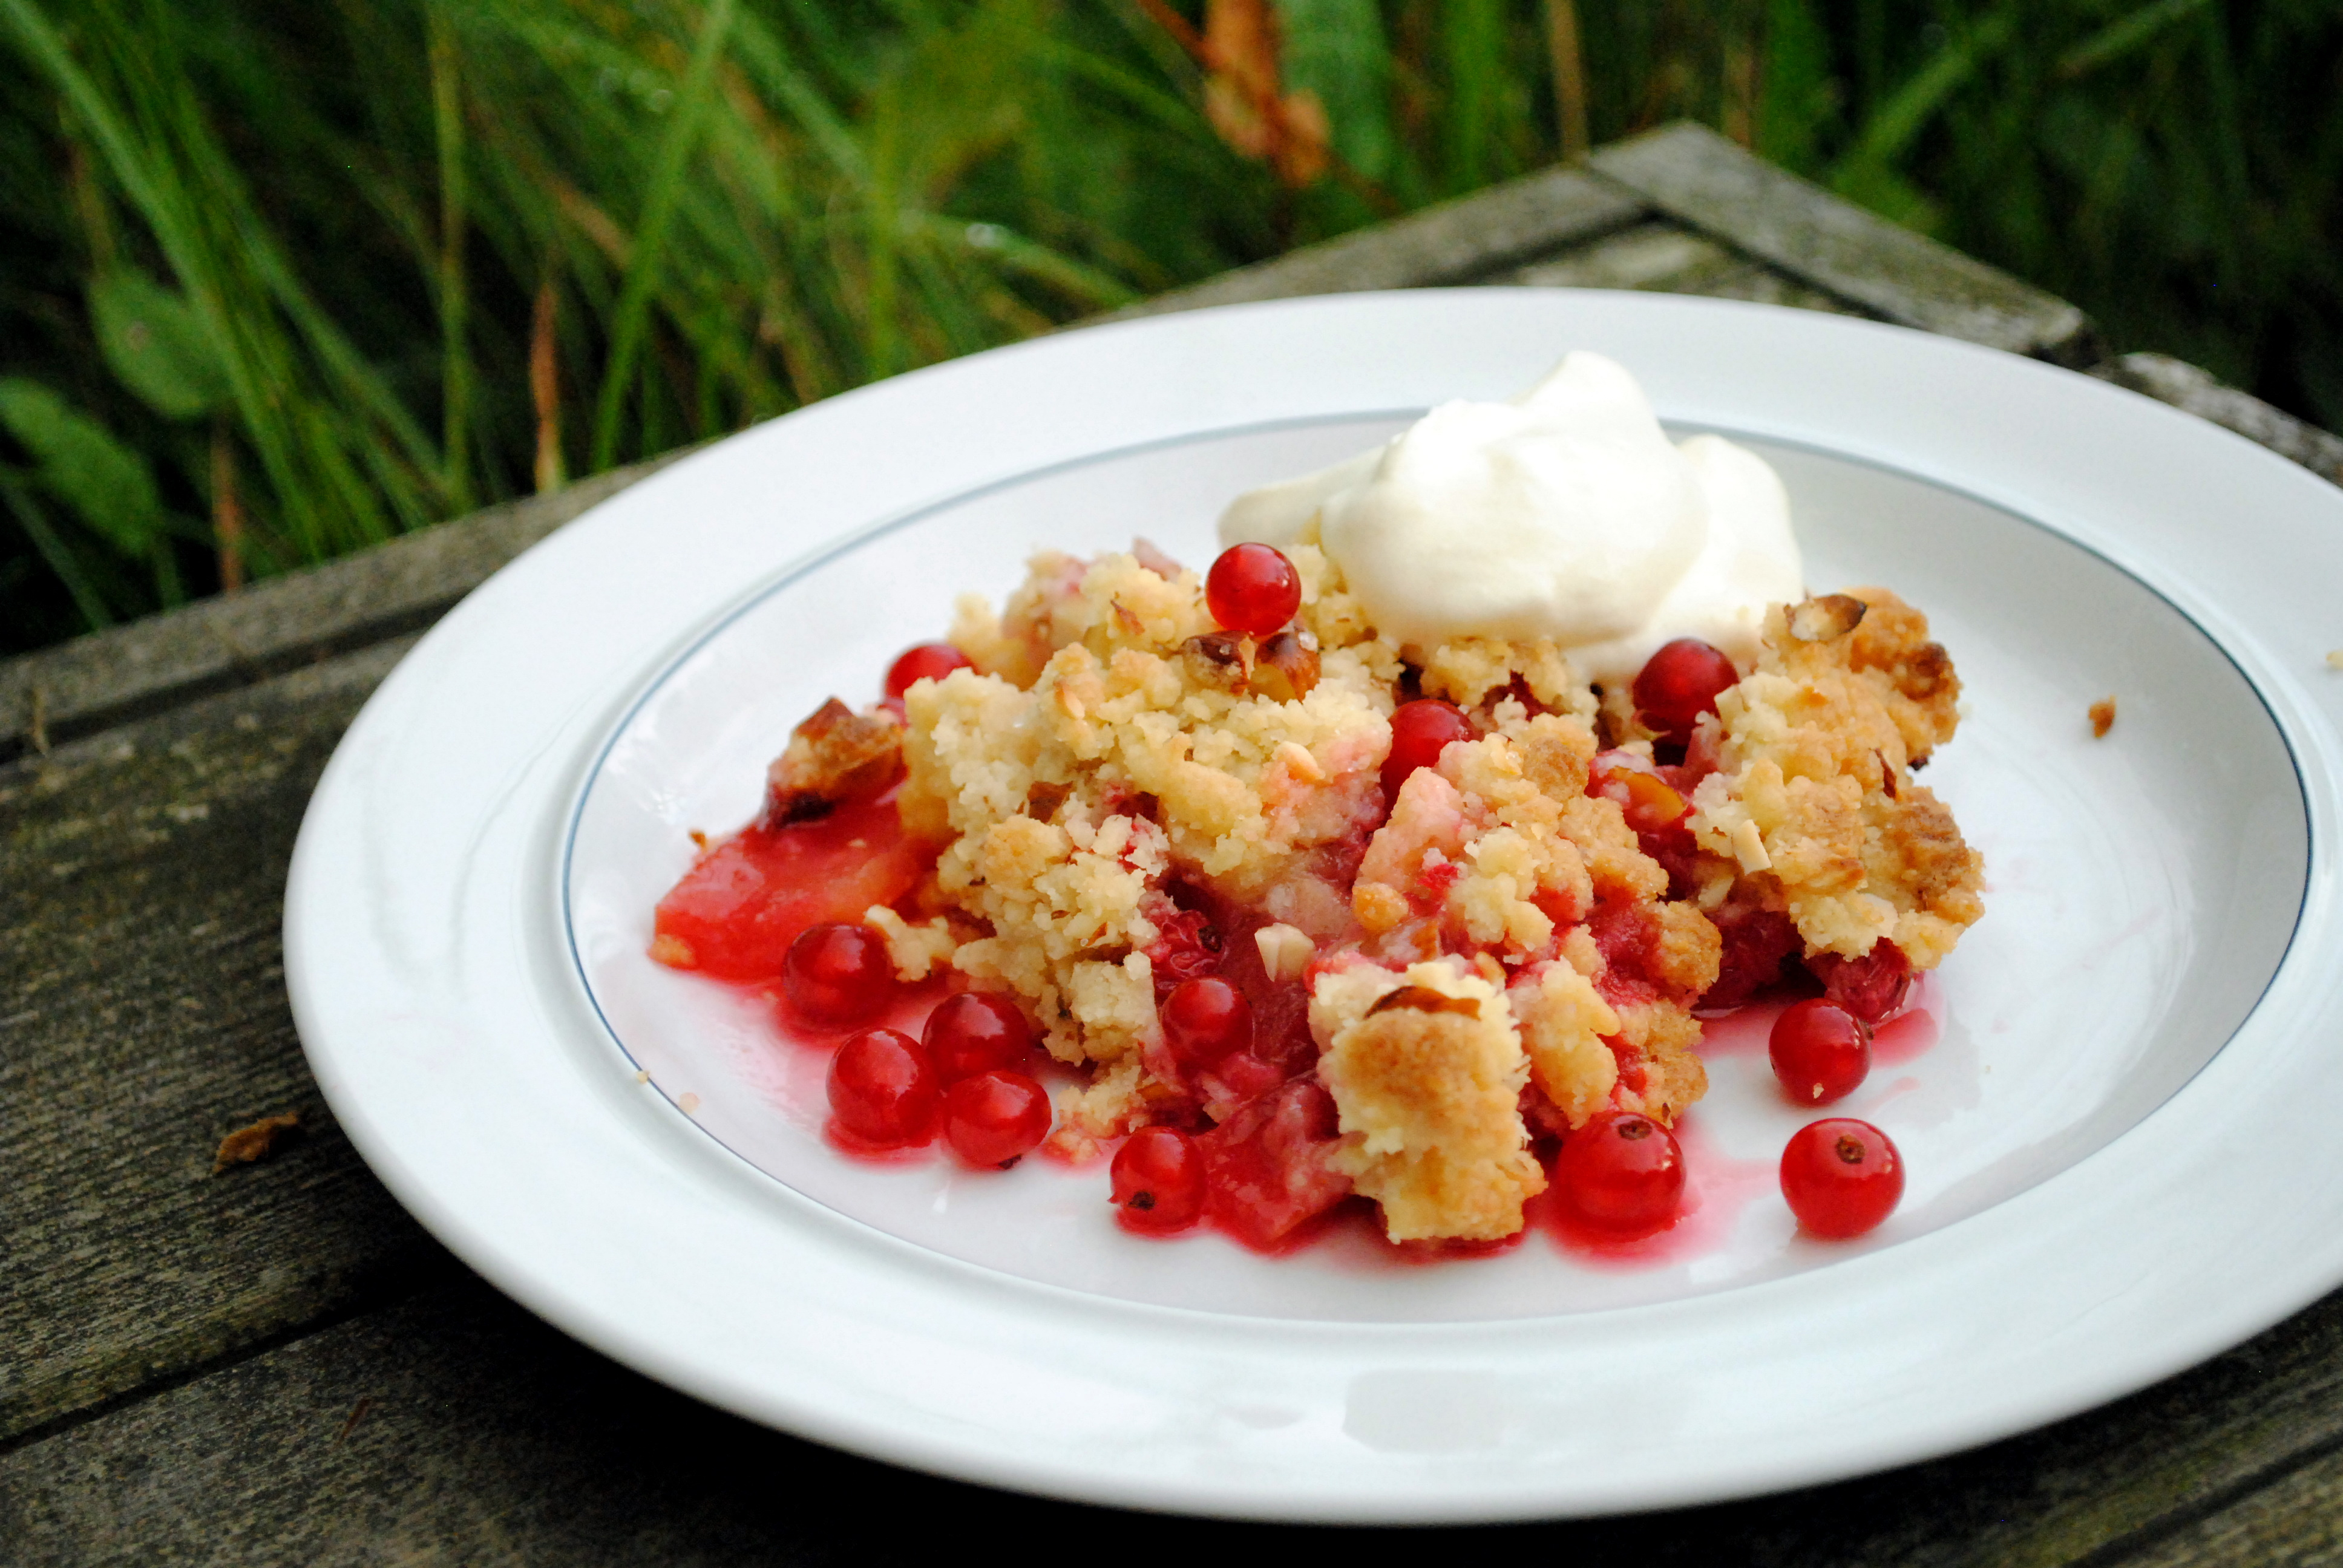 Crumble with redcurrant and apple